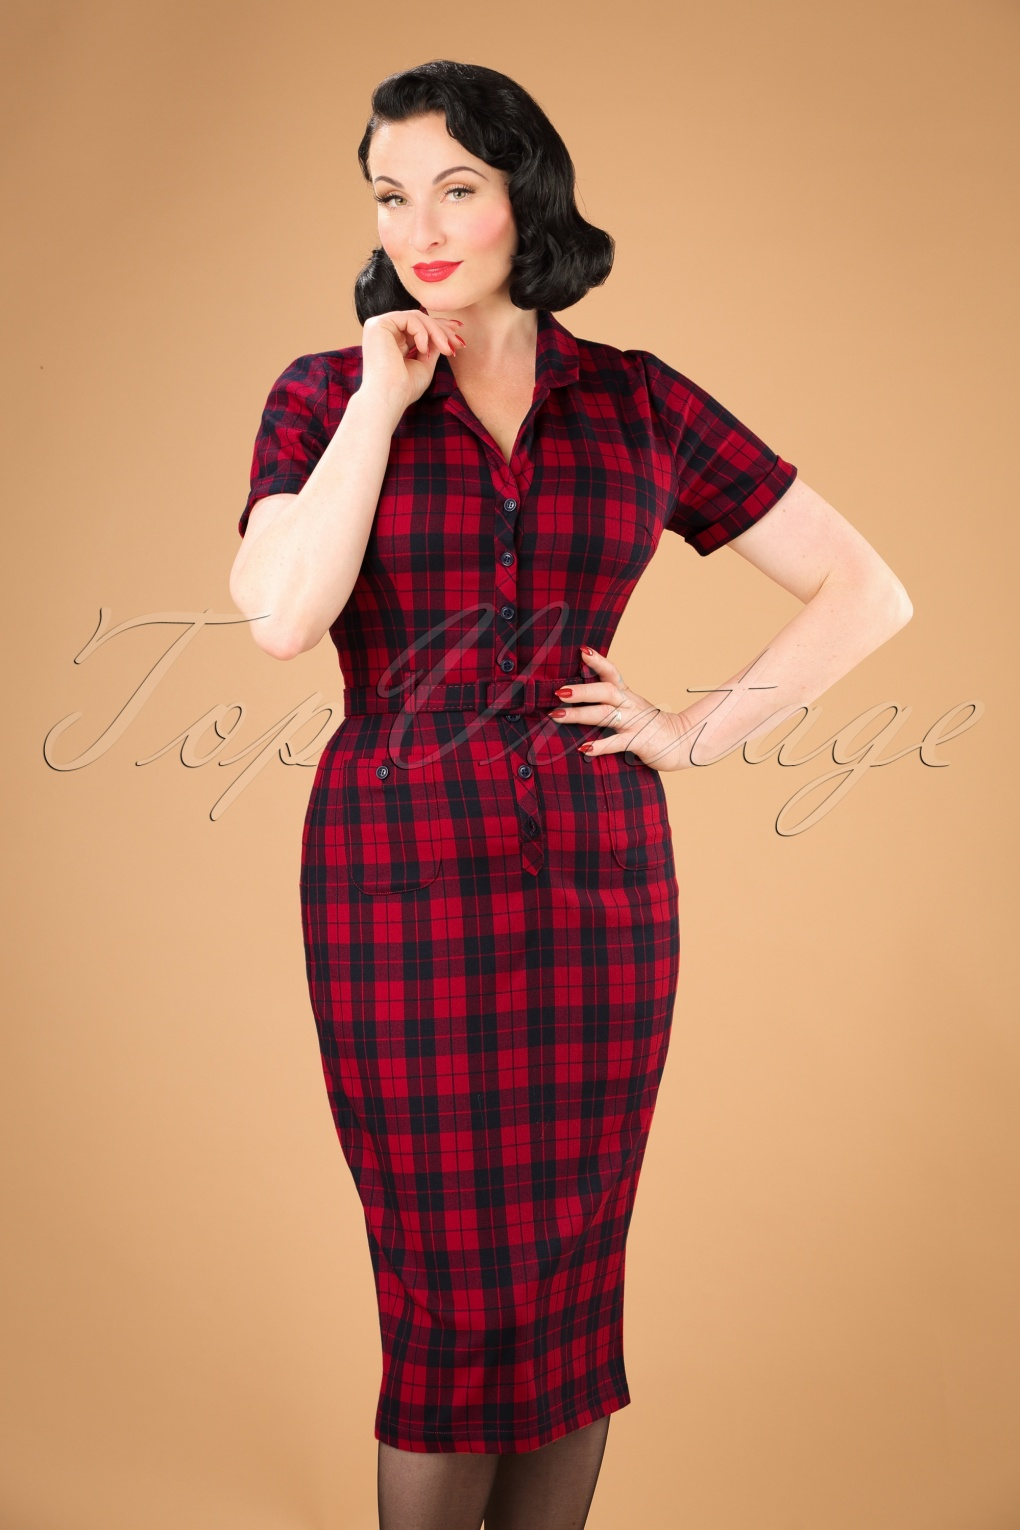 Wiggle Dresses | Pencil Dresses 50s Caterina Ettrick Check Pencil Dress in Red £68.41 AT vintagedancer.com